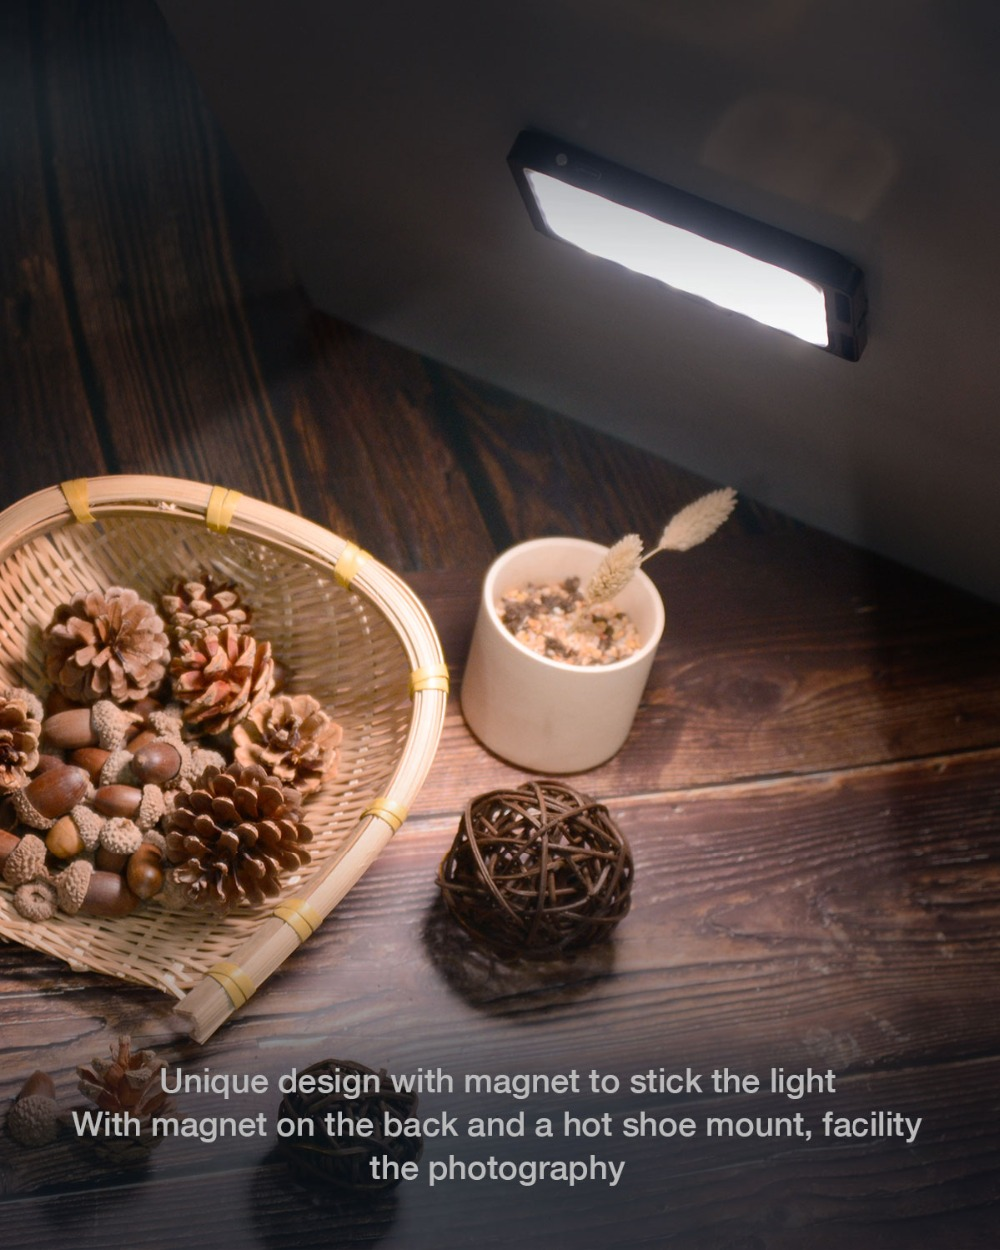 Image 4 - Moman Mini 4.5 Inch On Camera LED Video Light with Magnetic Back Bi Color 3000K 6500K CRI96+ Filming Lighting-in Photographic Lighting from Consumer Electronics